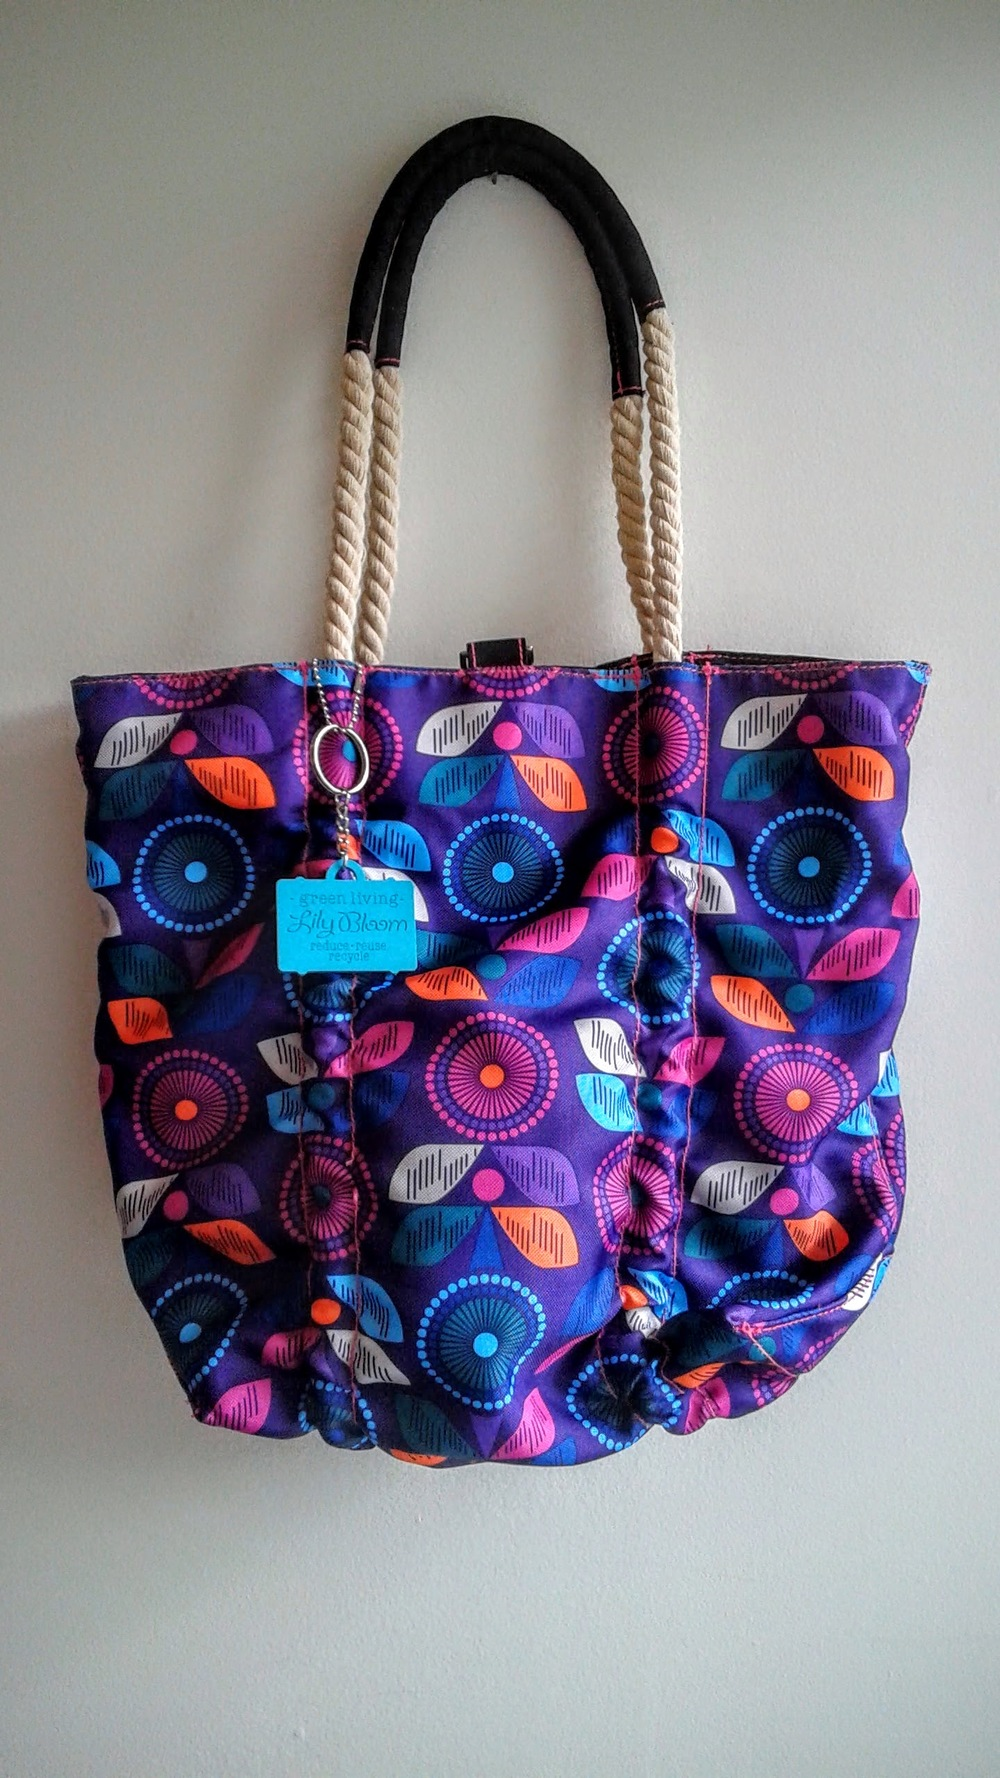 Lily Bloom tote, $28